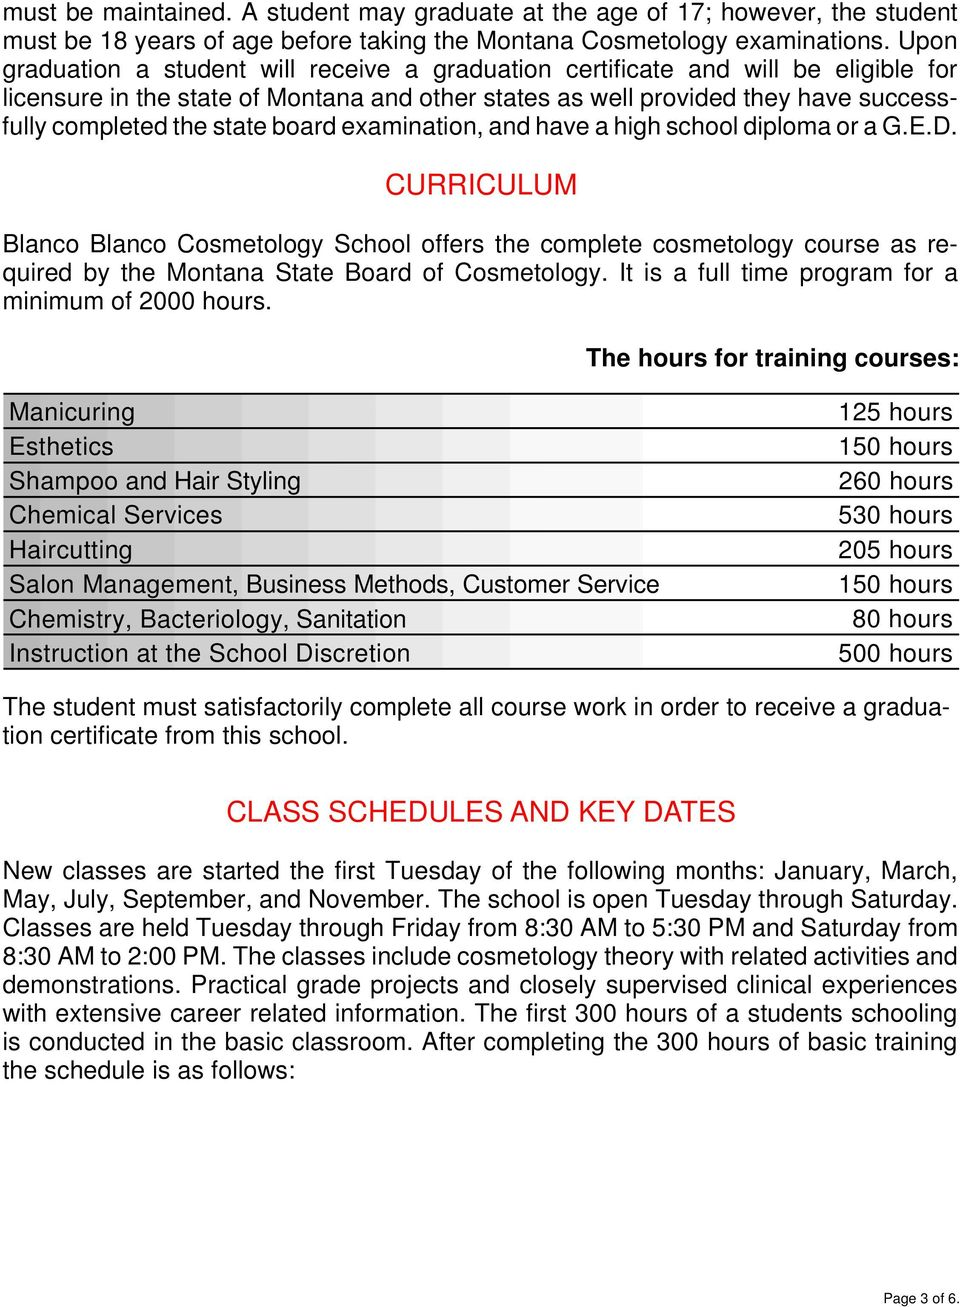 board examination, and have a high school diploma or a G.E.D. CURRICULUM Blanco Blanco Cosmetology School offers the complete cosmetology course as required by the Montana State Board of Cosmetology.